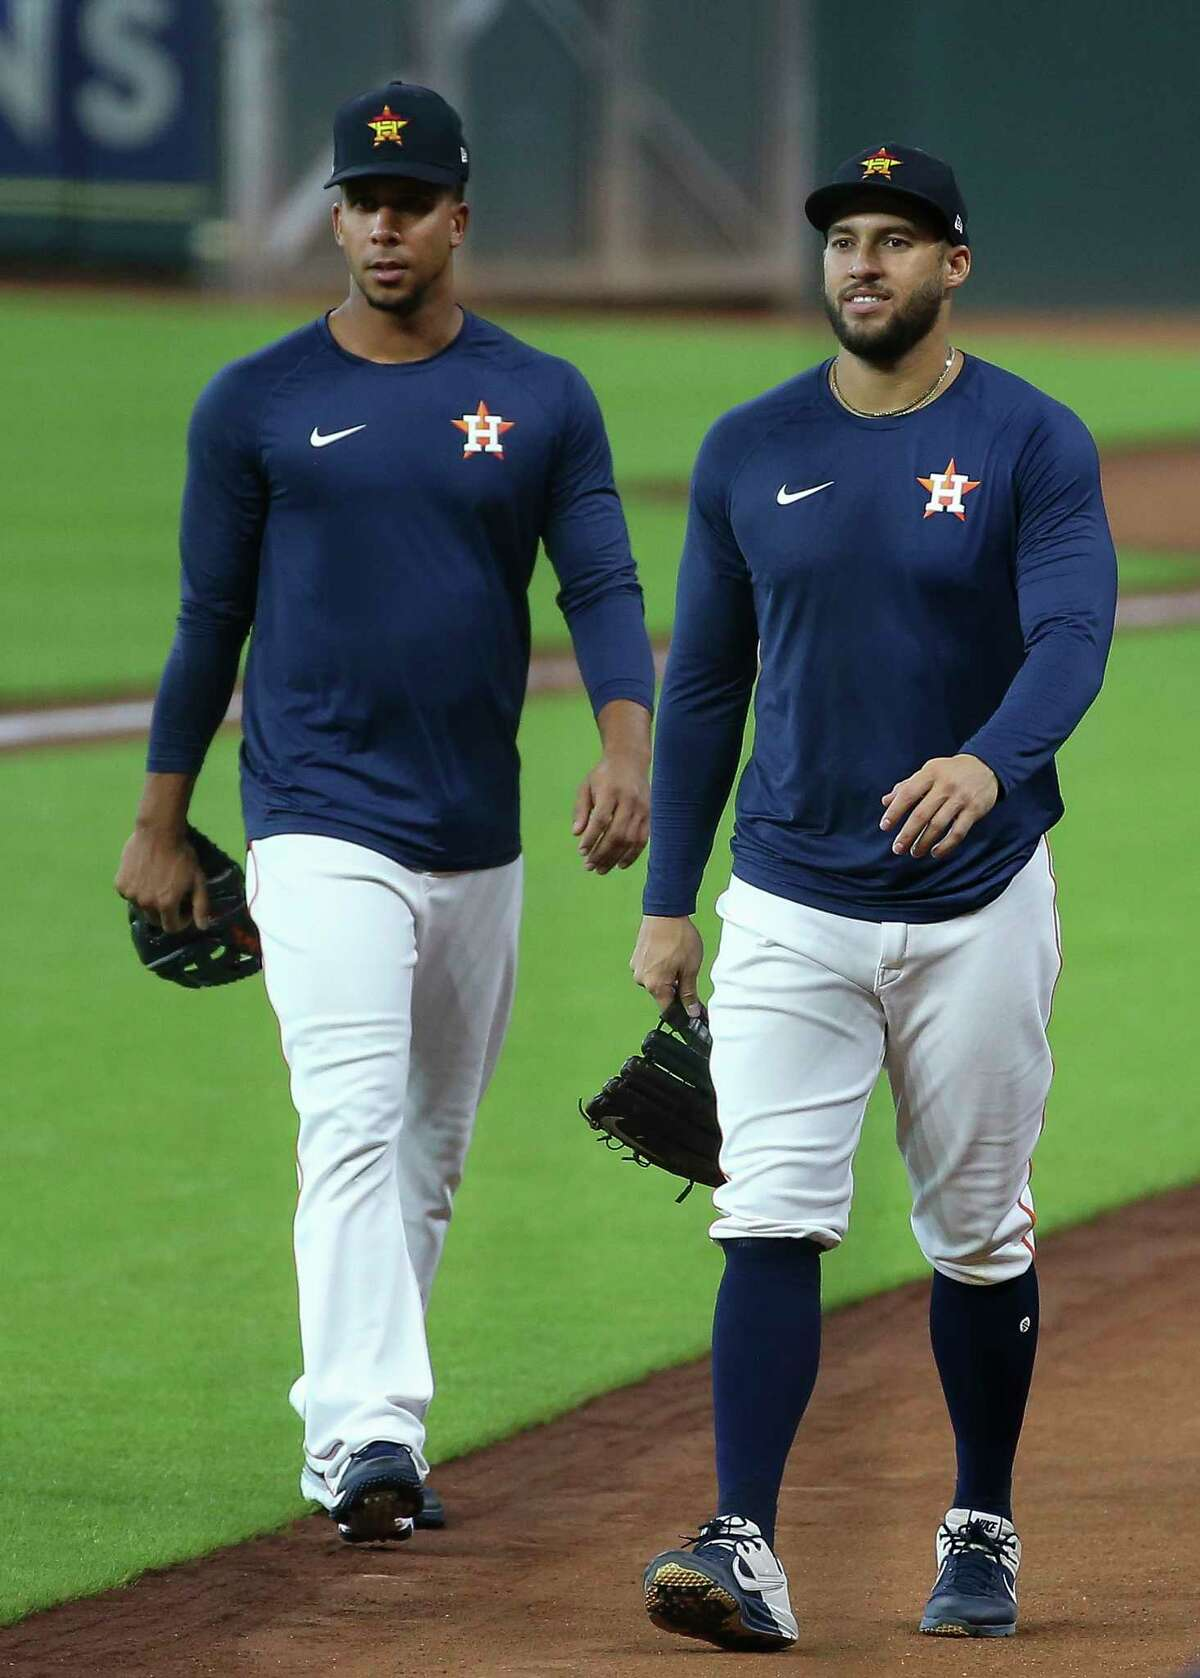 Houston Astros outfielders Michael Brantley, left, and George Springer wrap up the final workout before heading to Kansas City for two exhibition games Sunday, July 19, 2020, at Minute Maid Park in Houston.